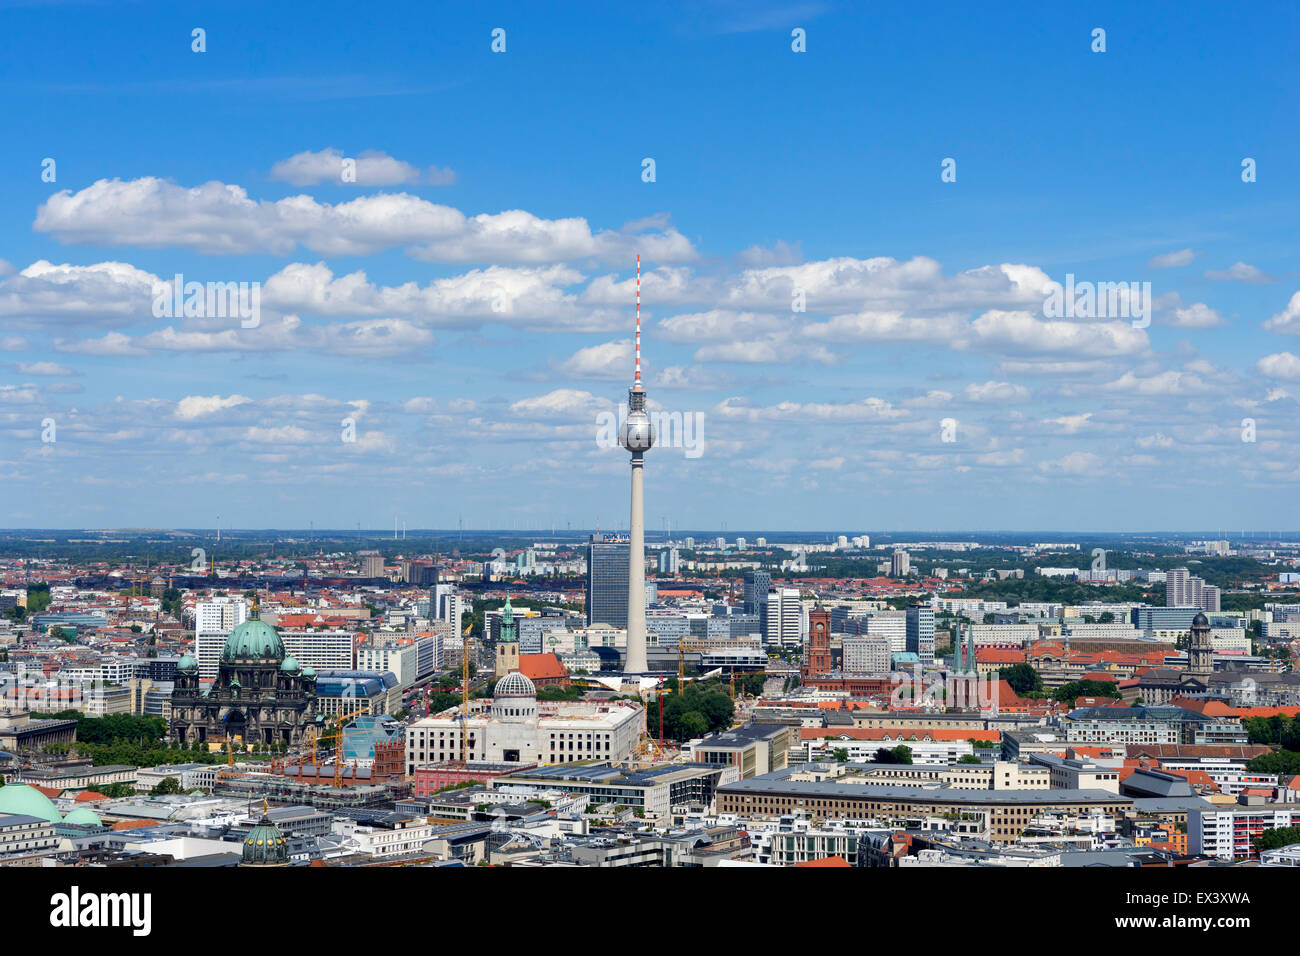 Daytime skyline view of Berlin with TV Tower or Fernsehturm in Germany - Stock Image